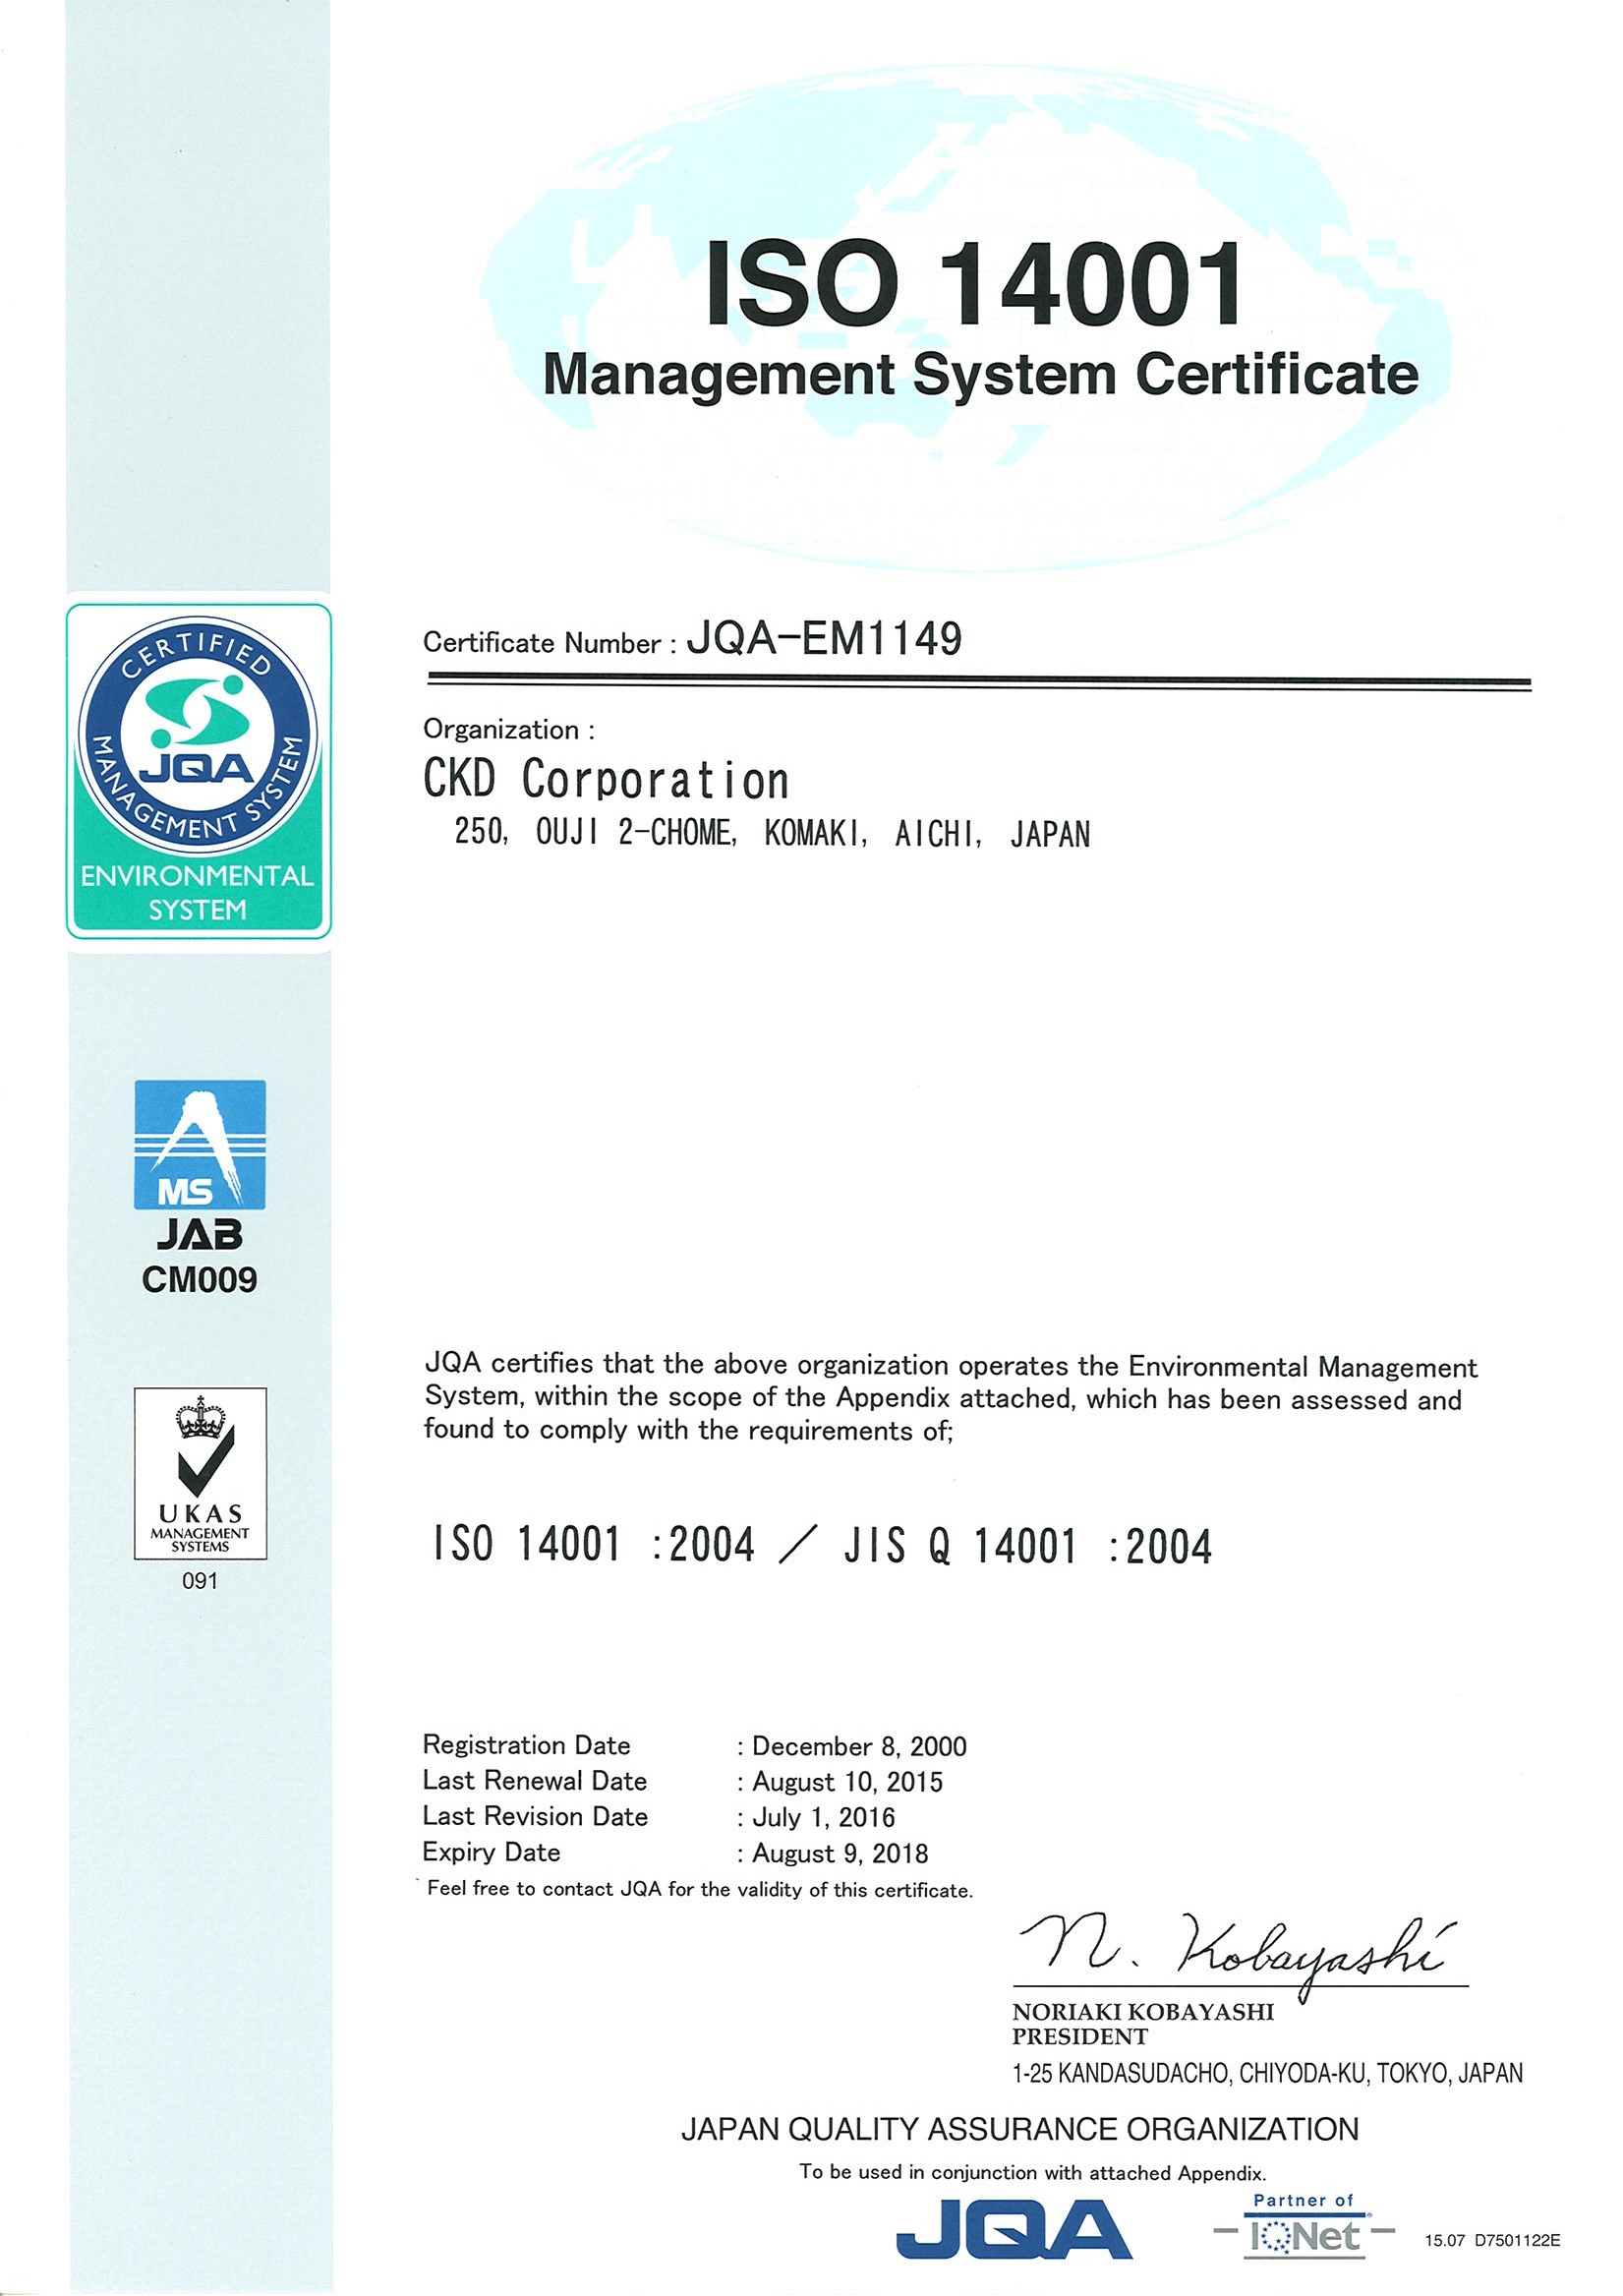 ISO14001 Log Book